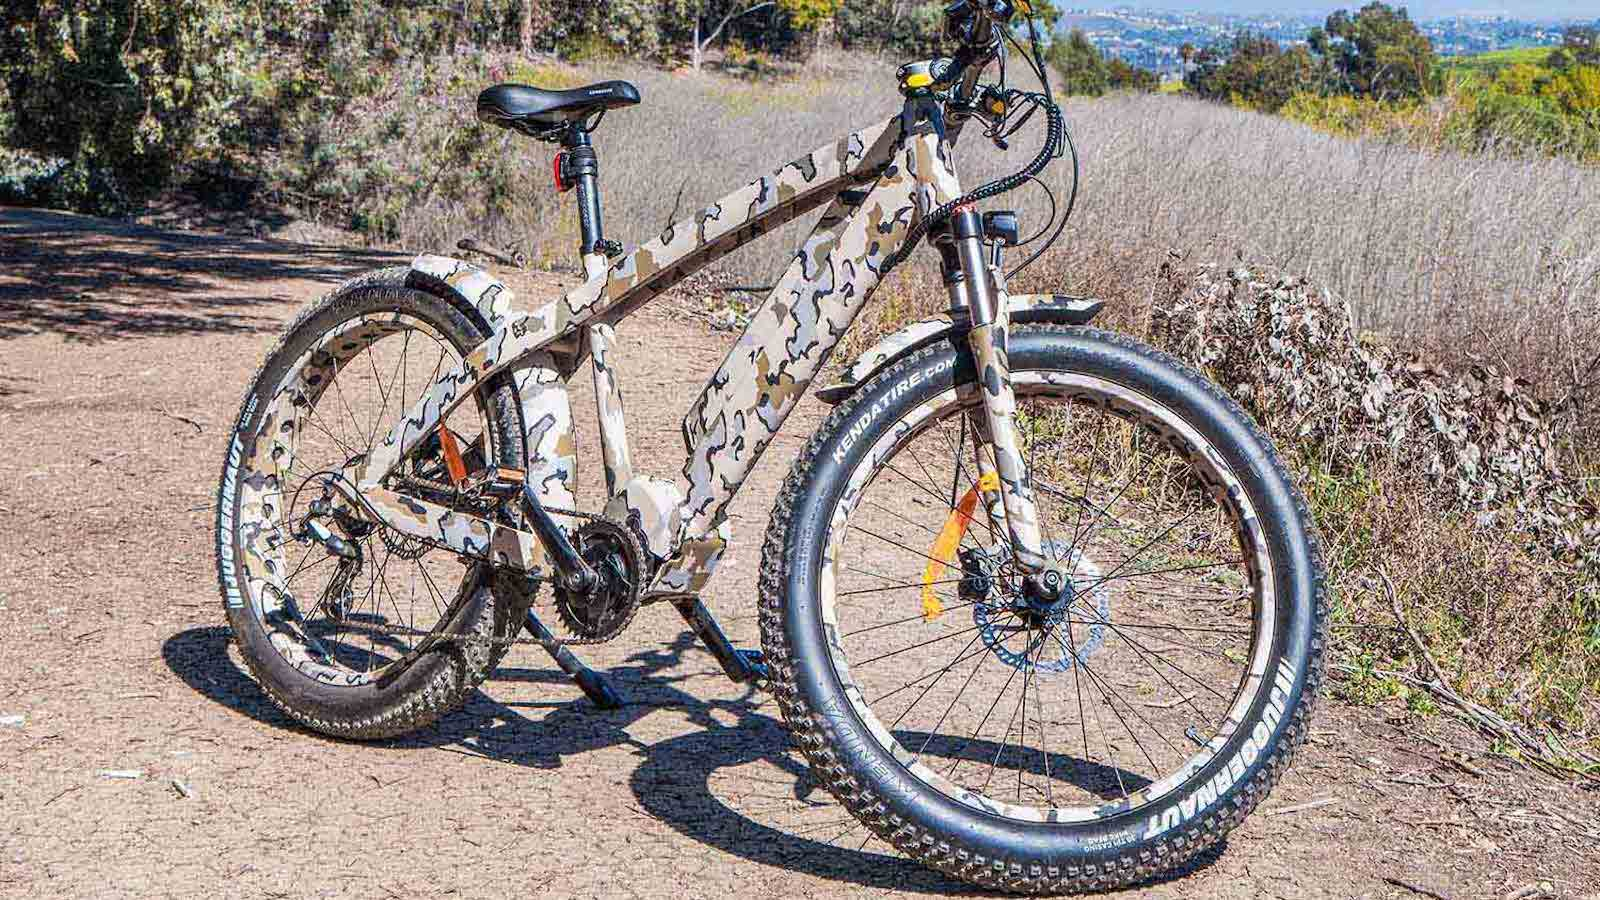 Addmotor Wildtan M-5600 Hunting eBike travels up to 70 miles per charge